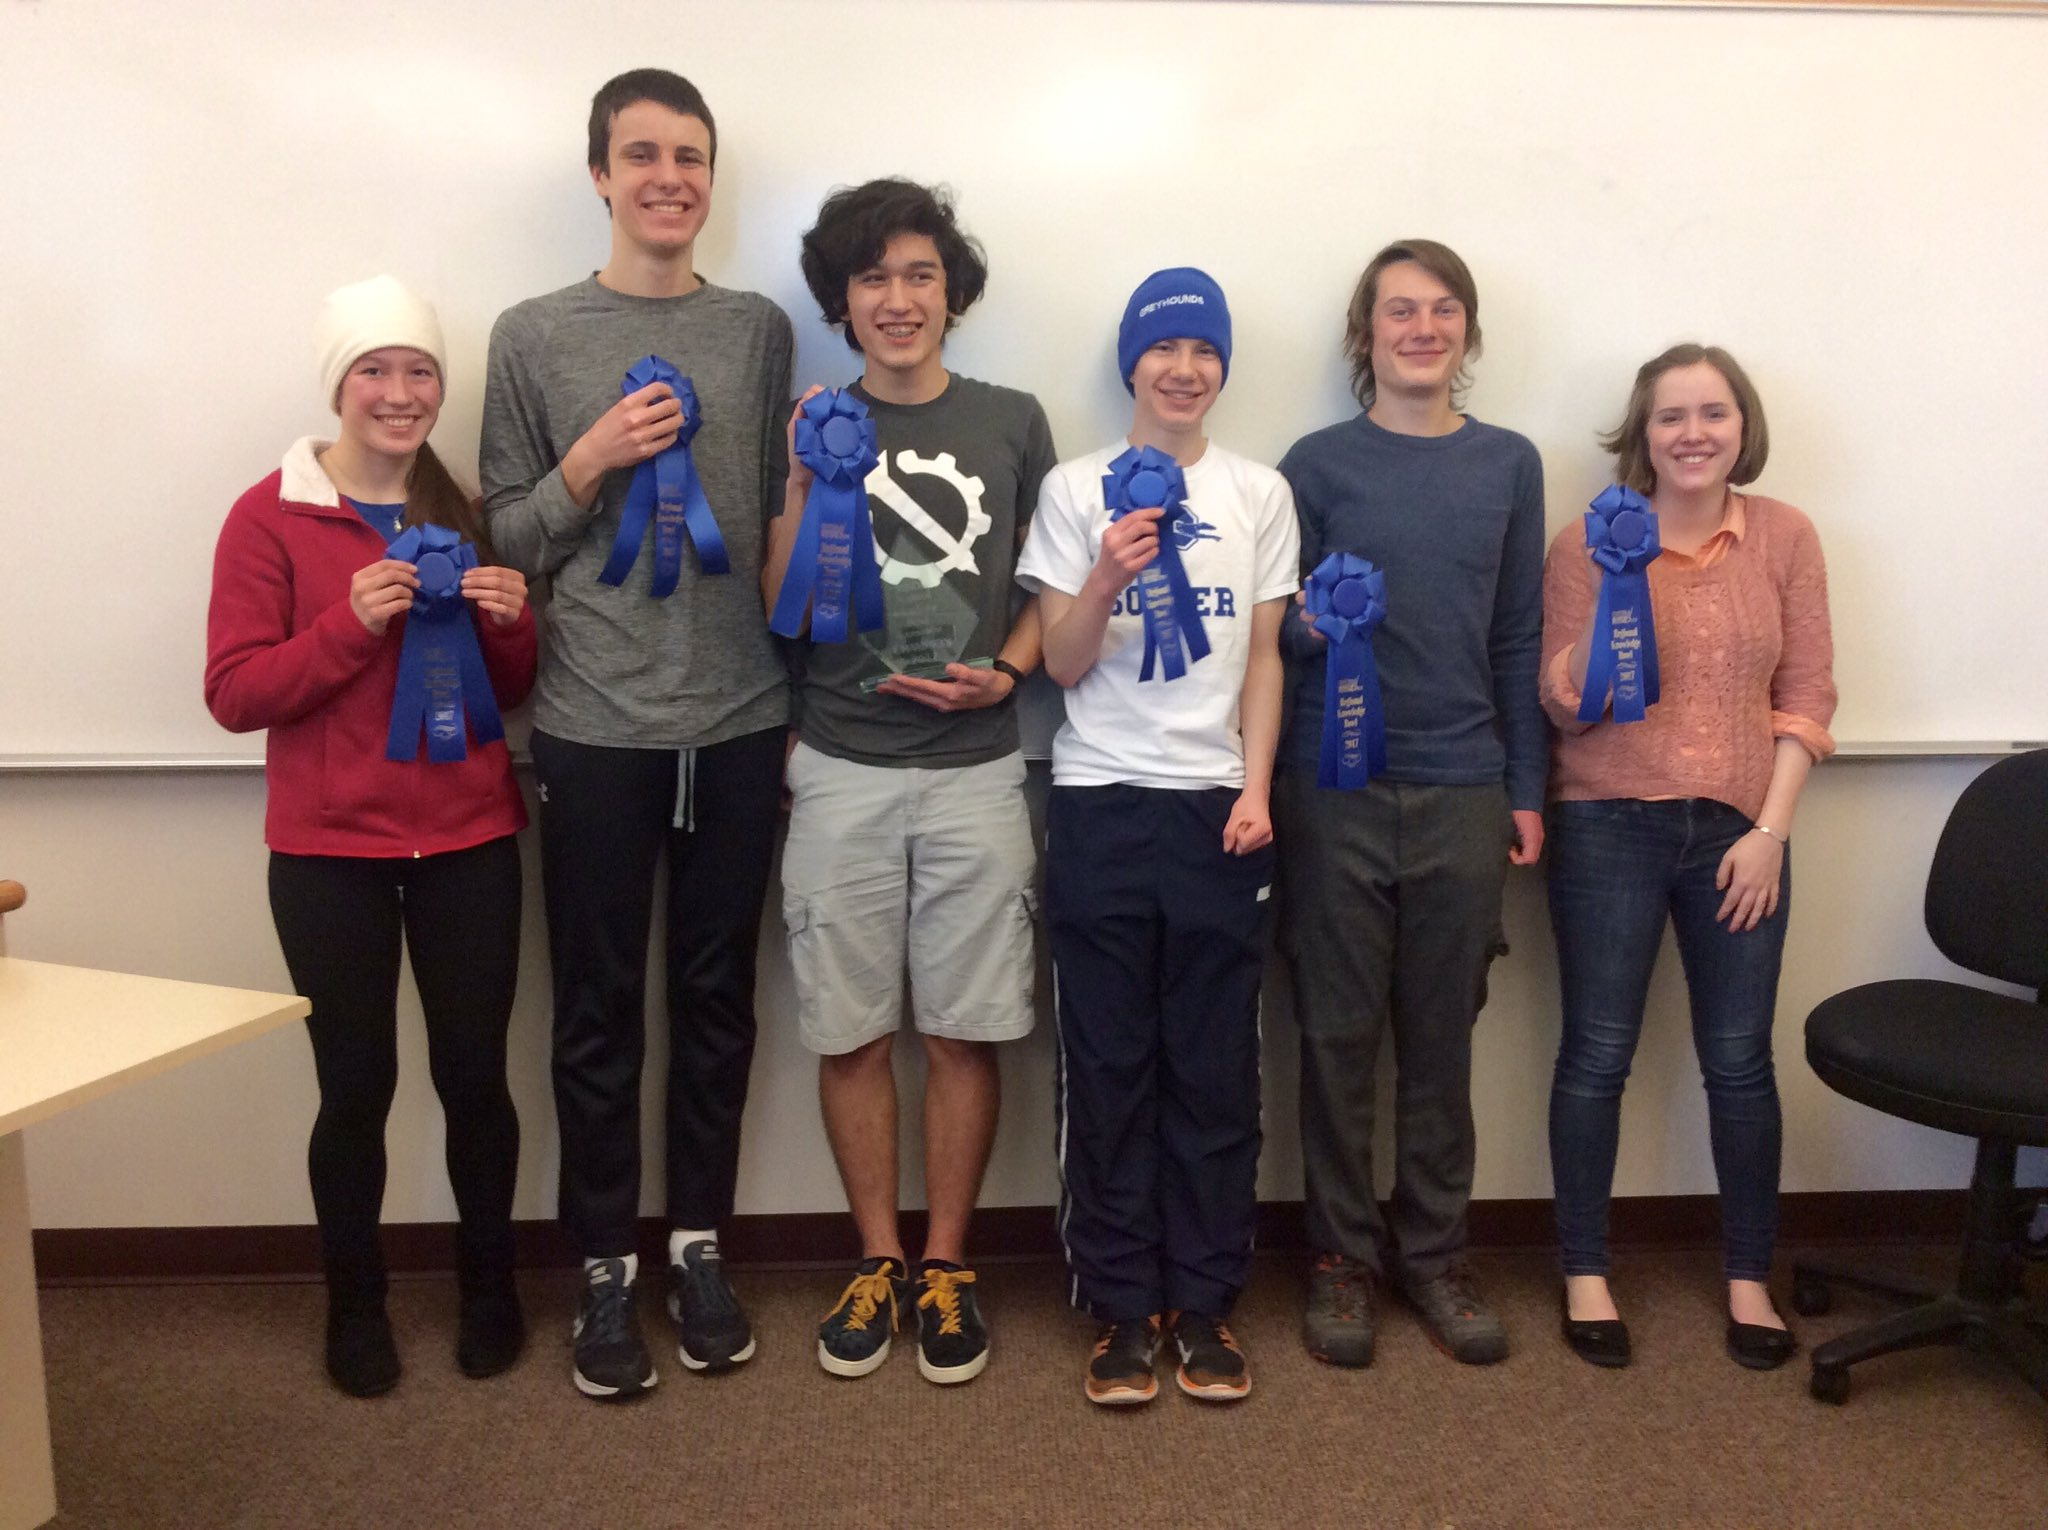 The 2017 PHS Varsity Knowledge Bowl Team after winning the NEWESD Regional Tournament!  Pictured (Left to Right)Gillian Oaks, Ryan McCluskey, Jerome Campbell, Declan Edgecombe, Reed Harder, and Adelaide Willis.